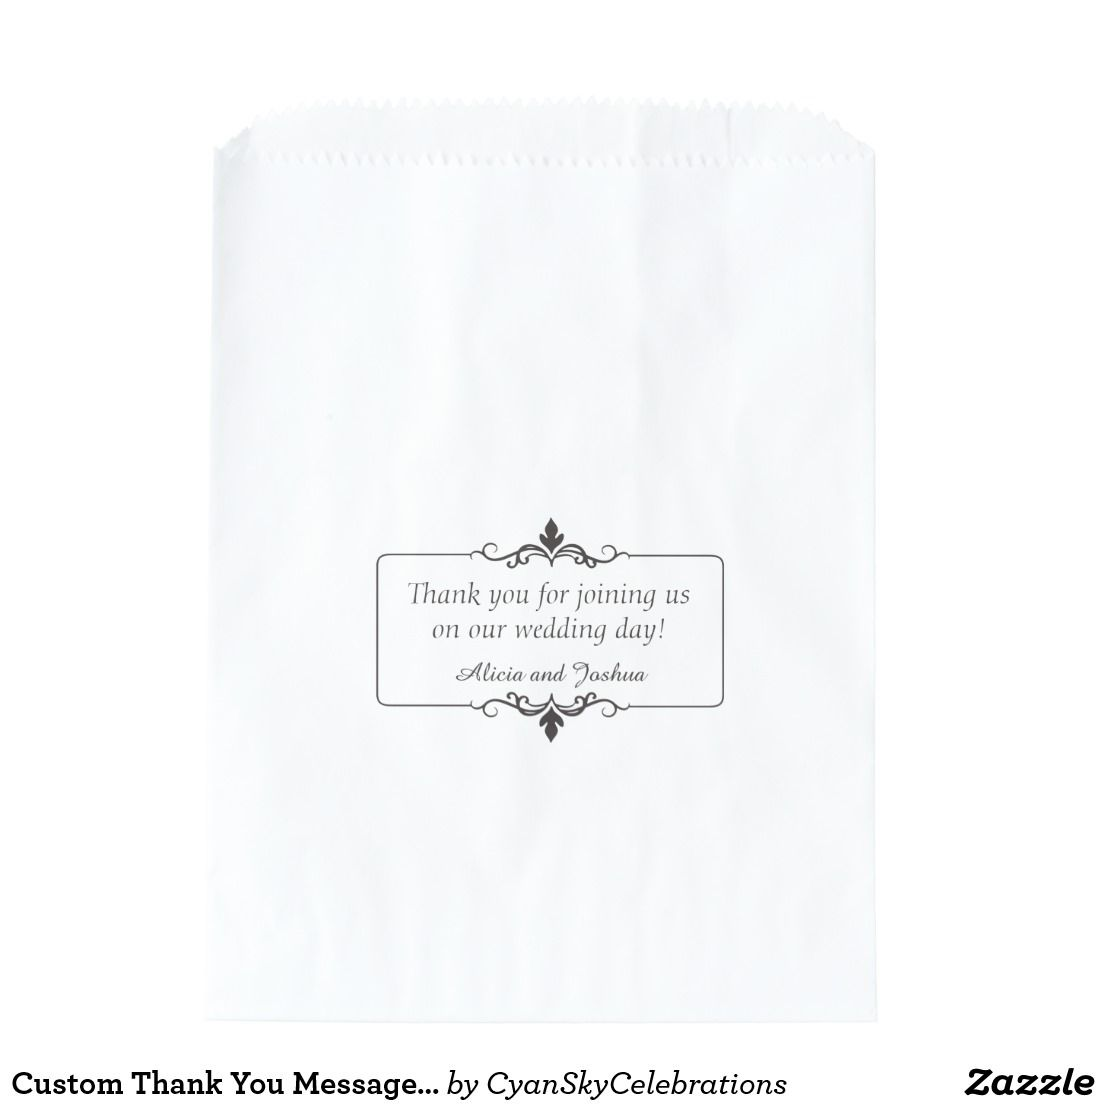 Custom Thank You Message Personalized Wedding Favor Bag ...